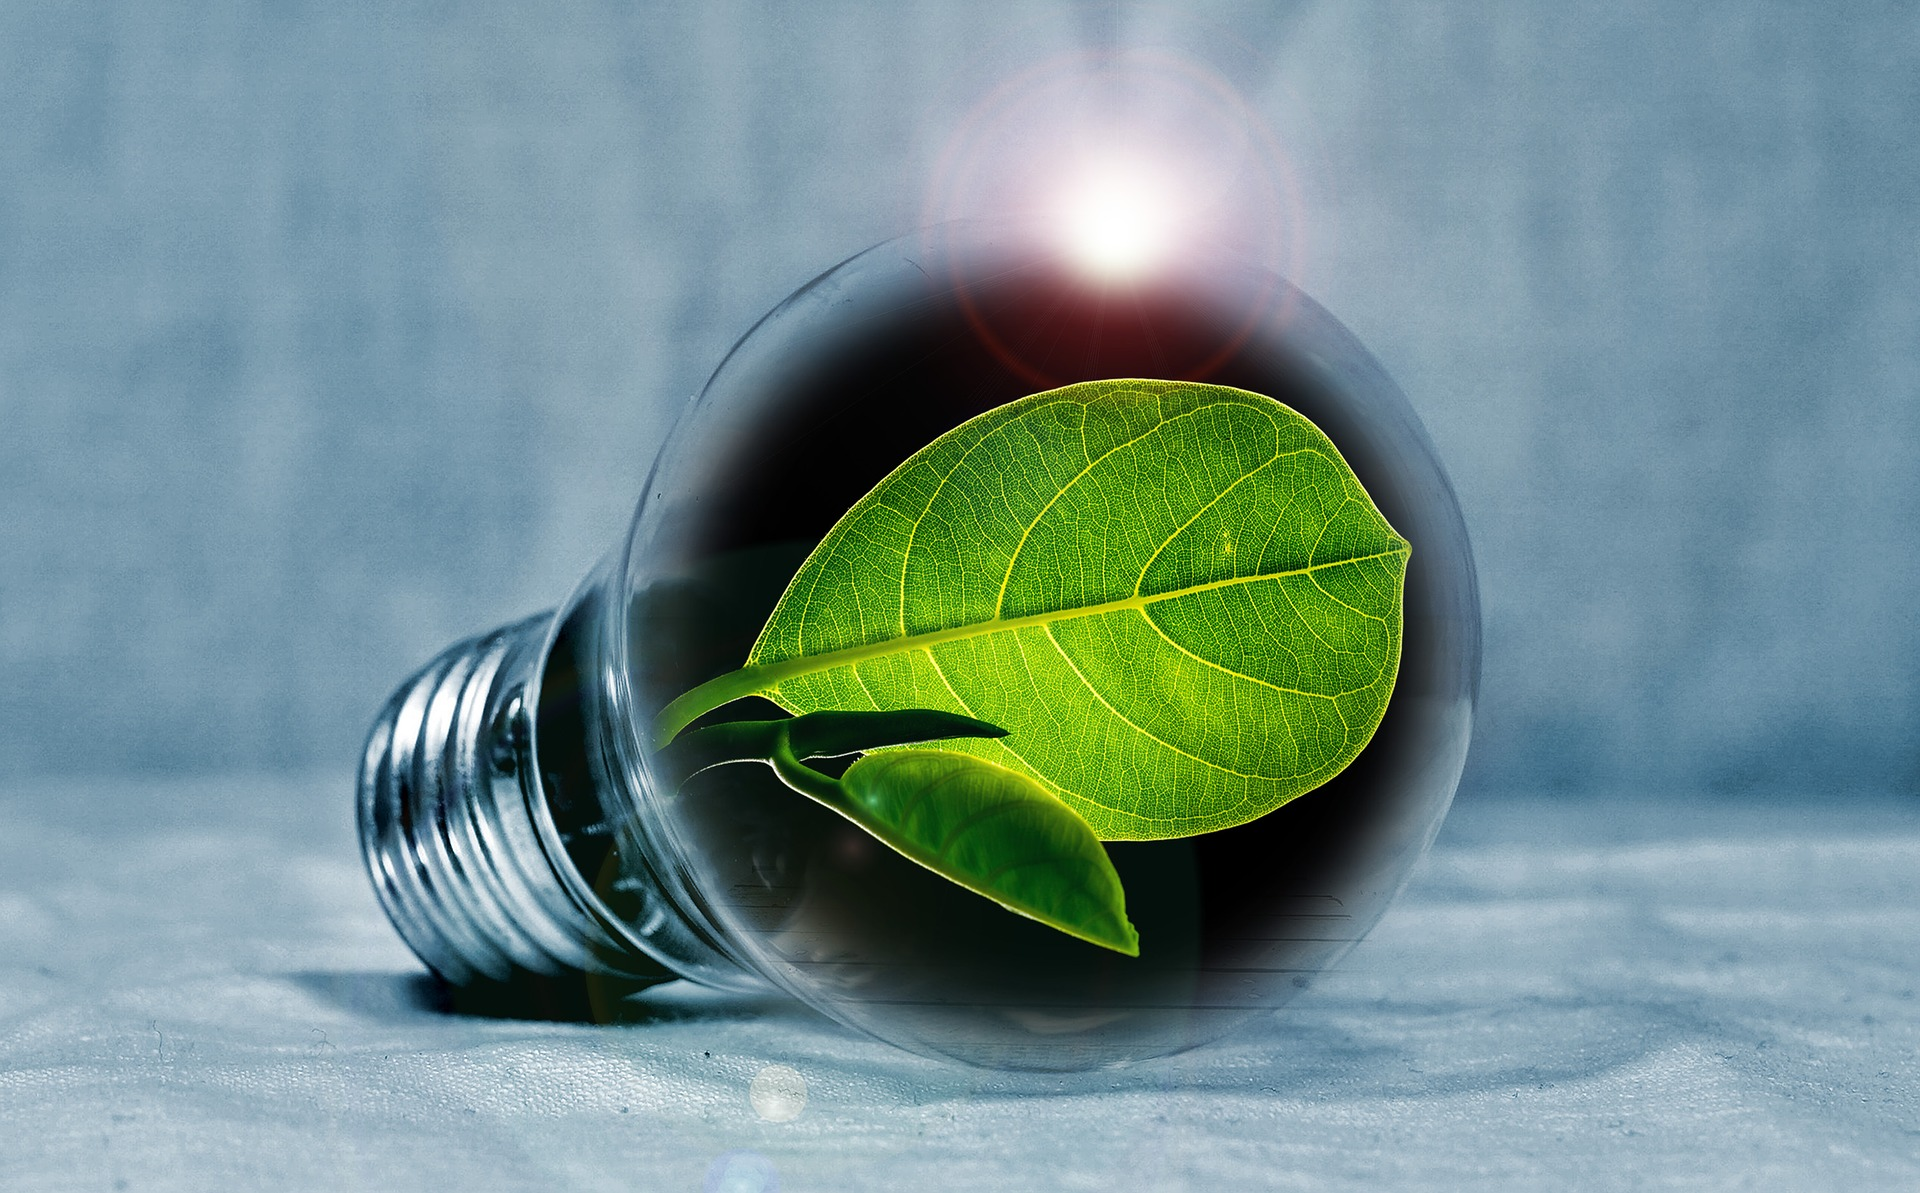 lightbulb with a green leaf in it